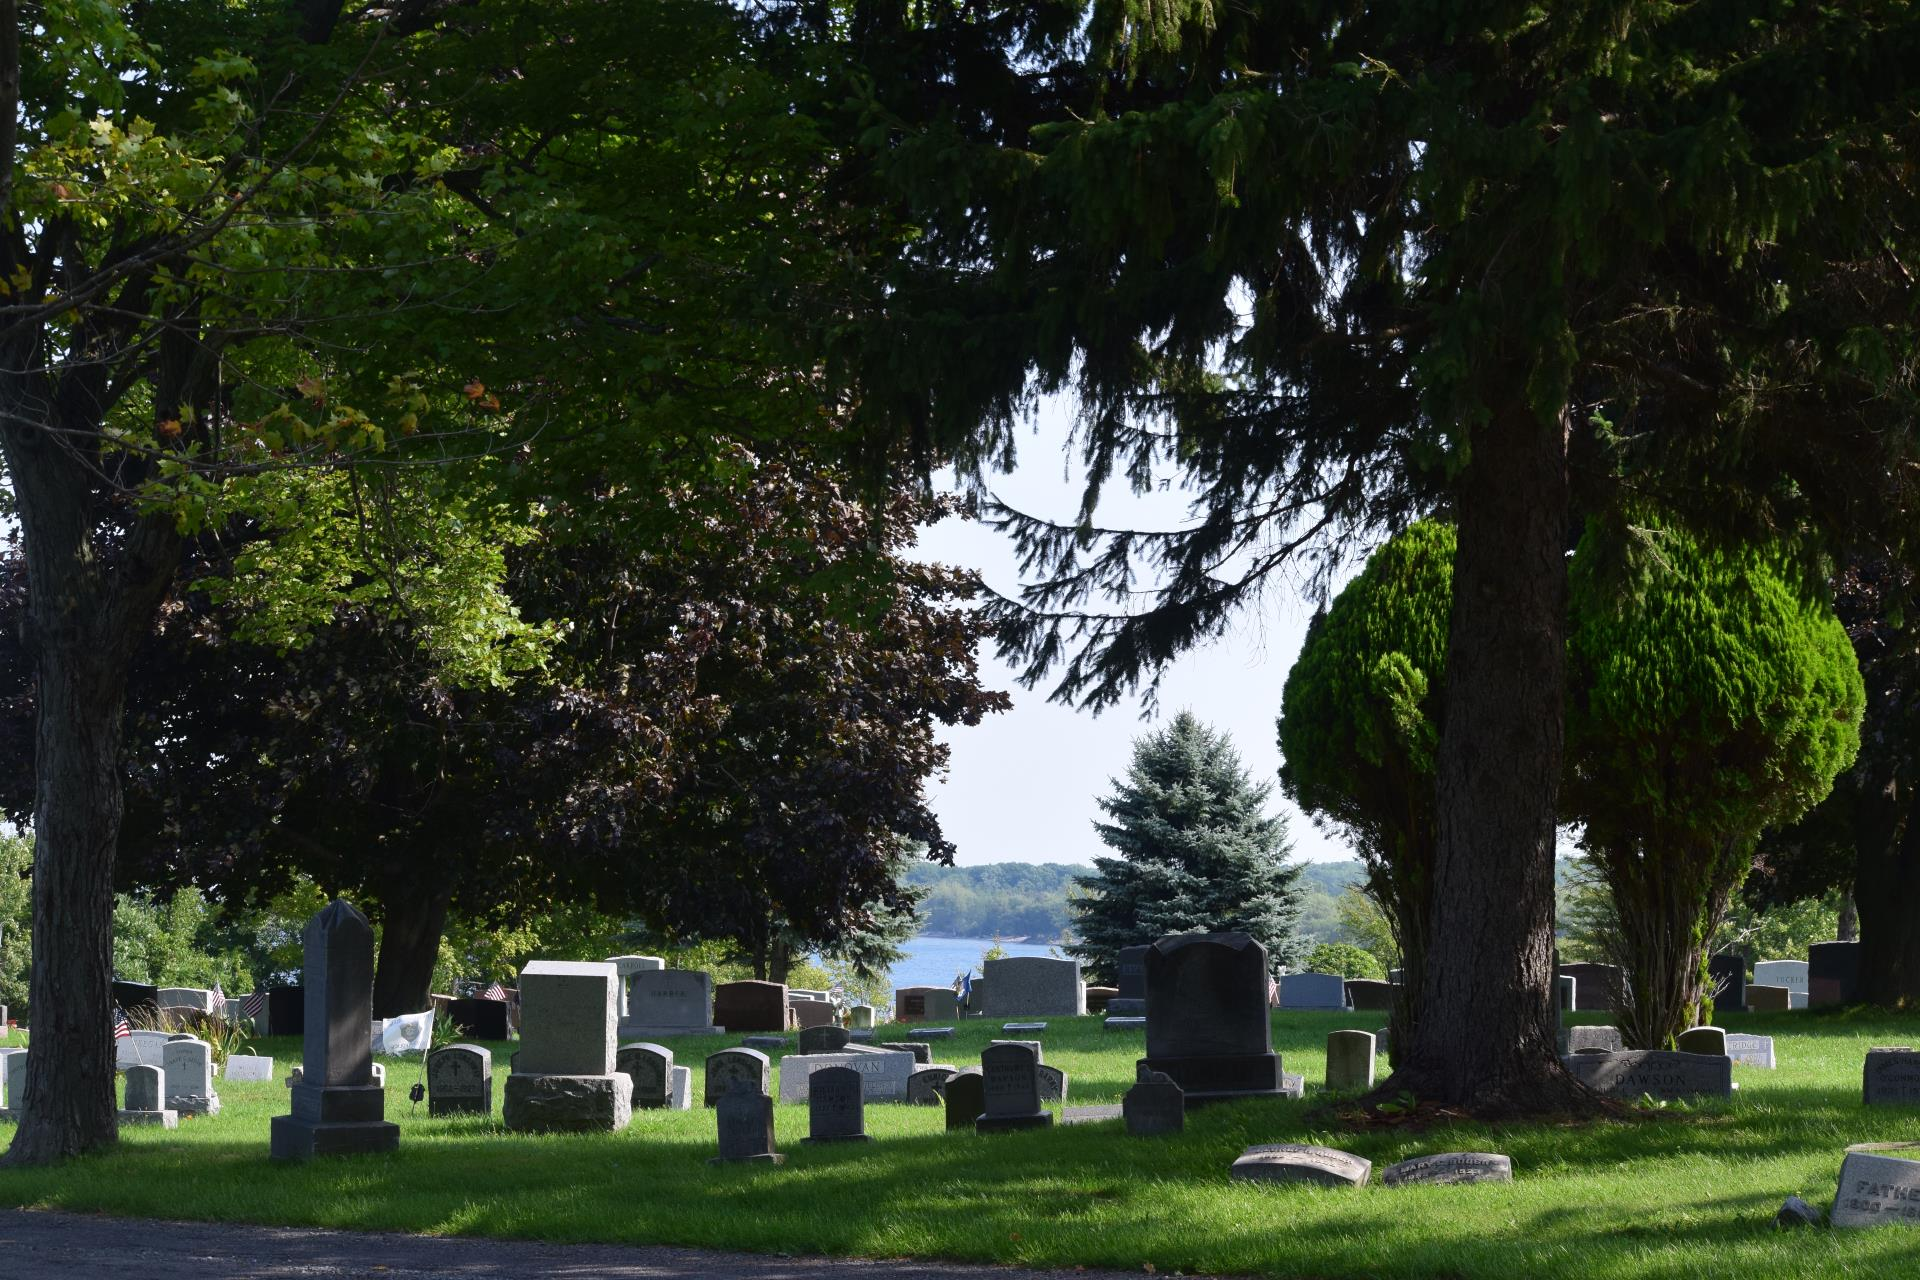 Burial grounds at St. Paul's Cemetery